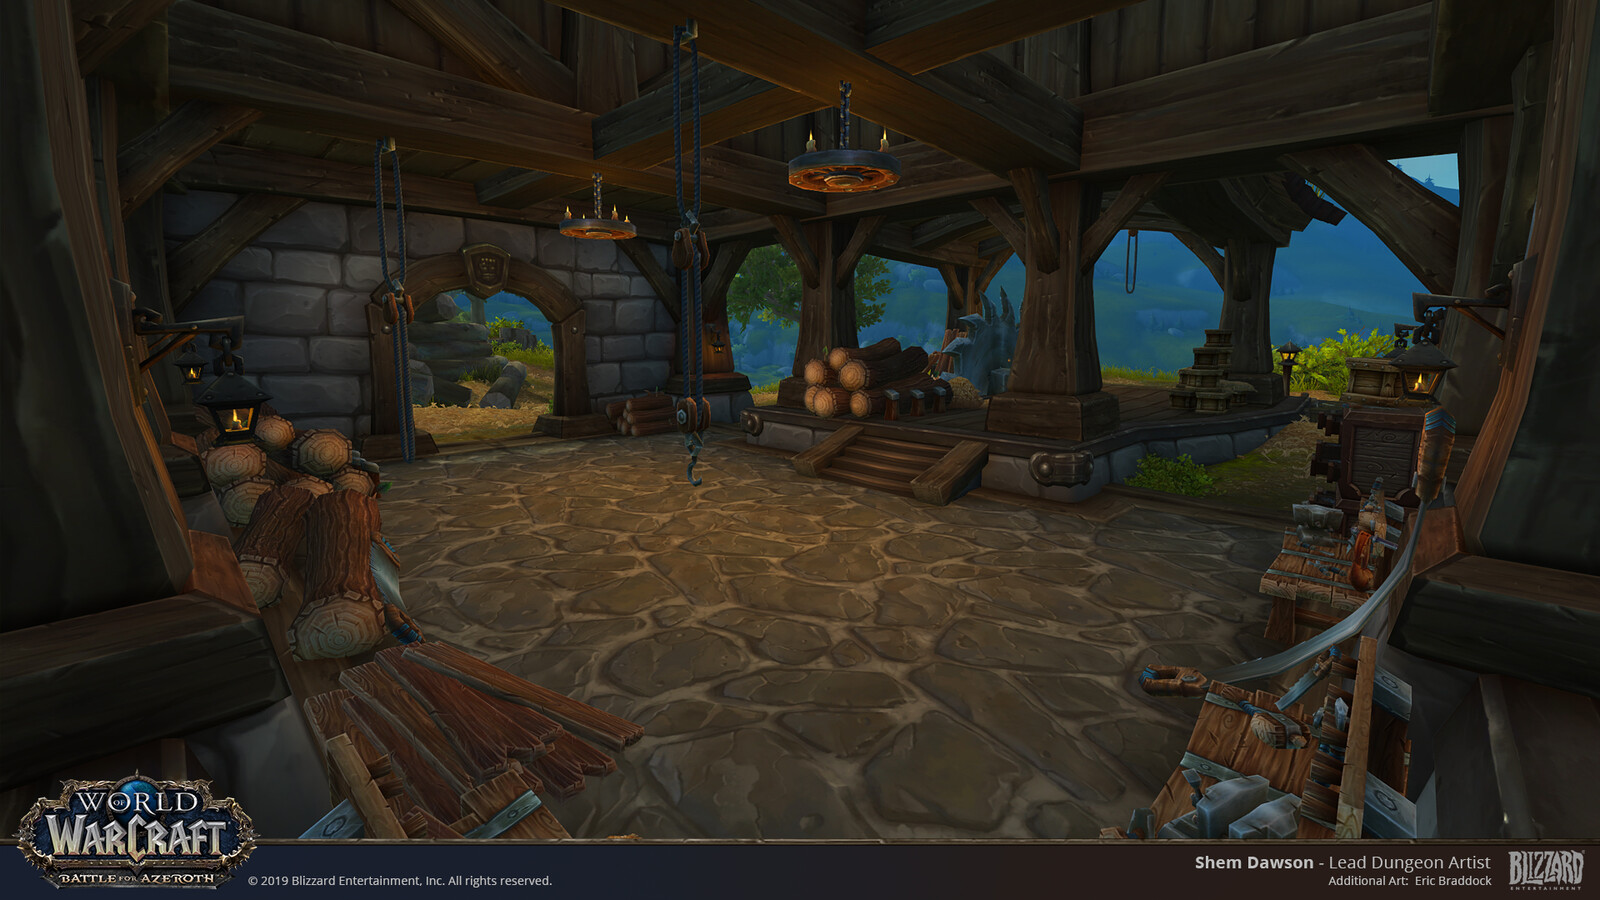 The LumberMill Area